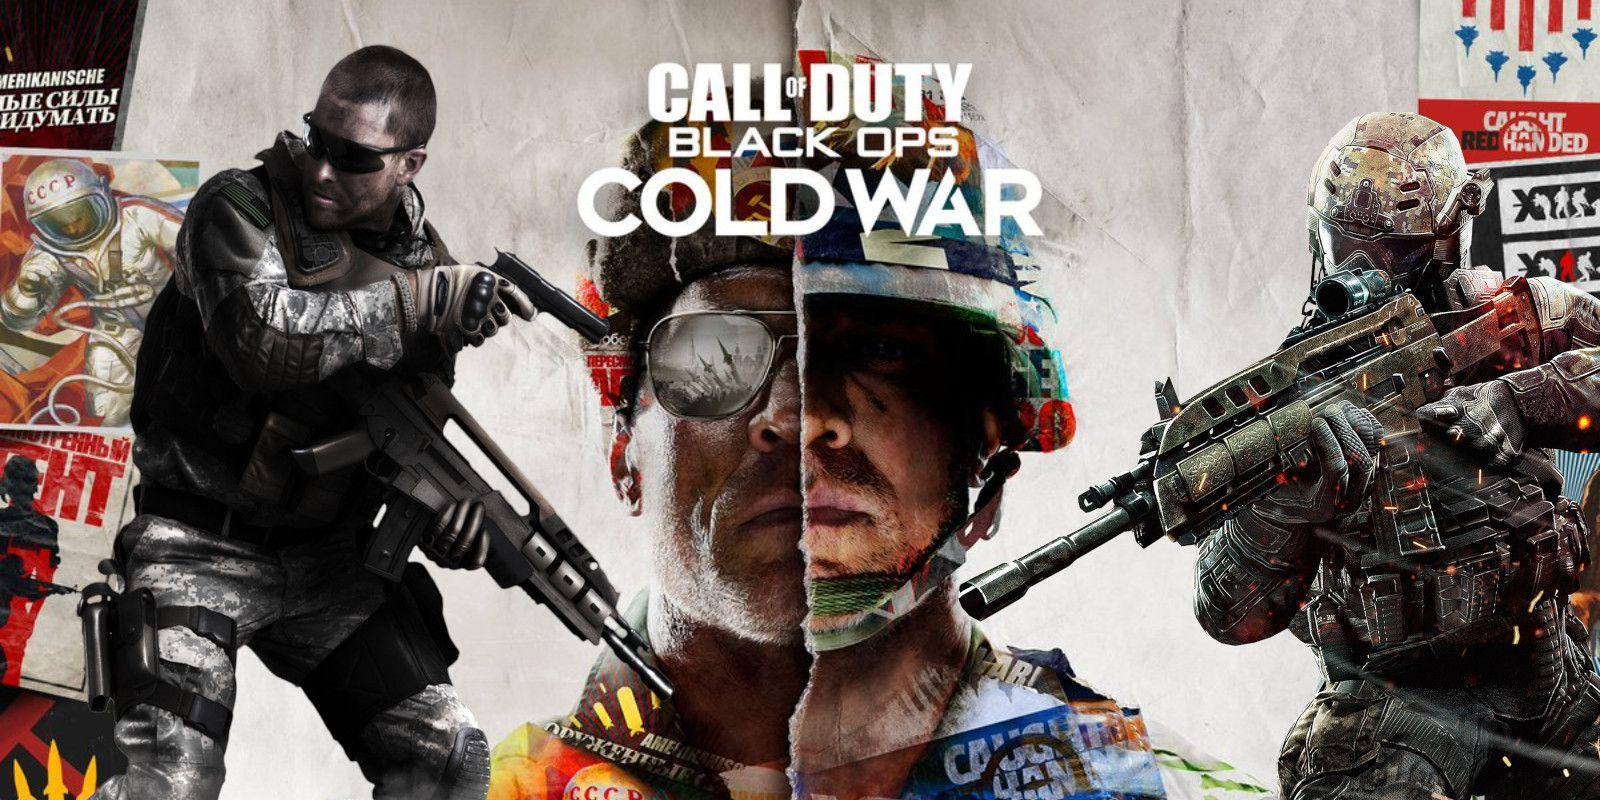 Call of Duty Black Ops: Cold War Update